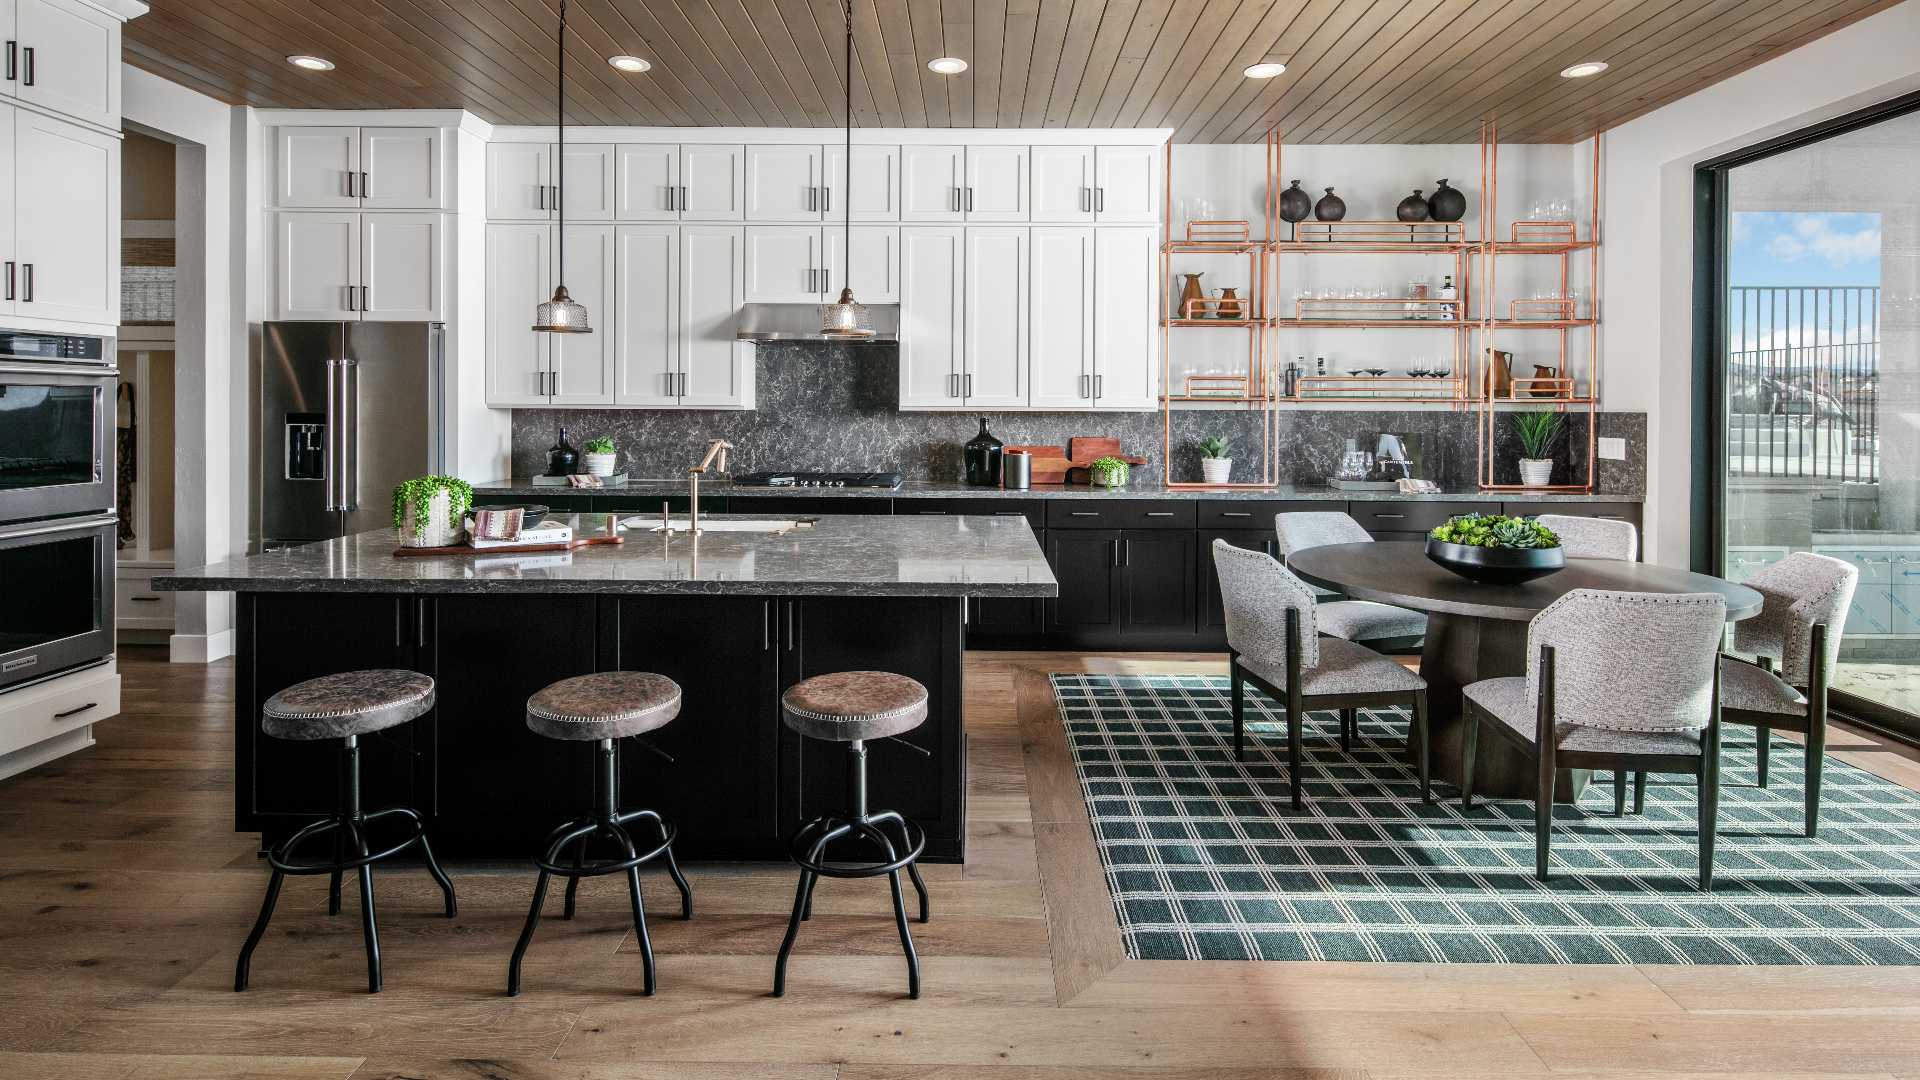 New Luxury Homes For Sale In Reno Nv Copper View At Caramella Ranch In 2020 Luxury Homes Mid Century Modern Kitchen Modern Kitchen